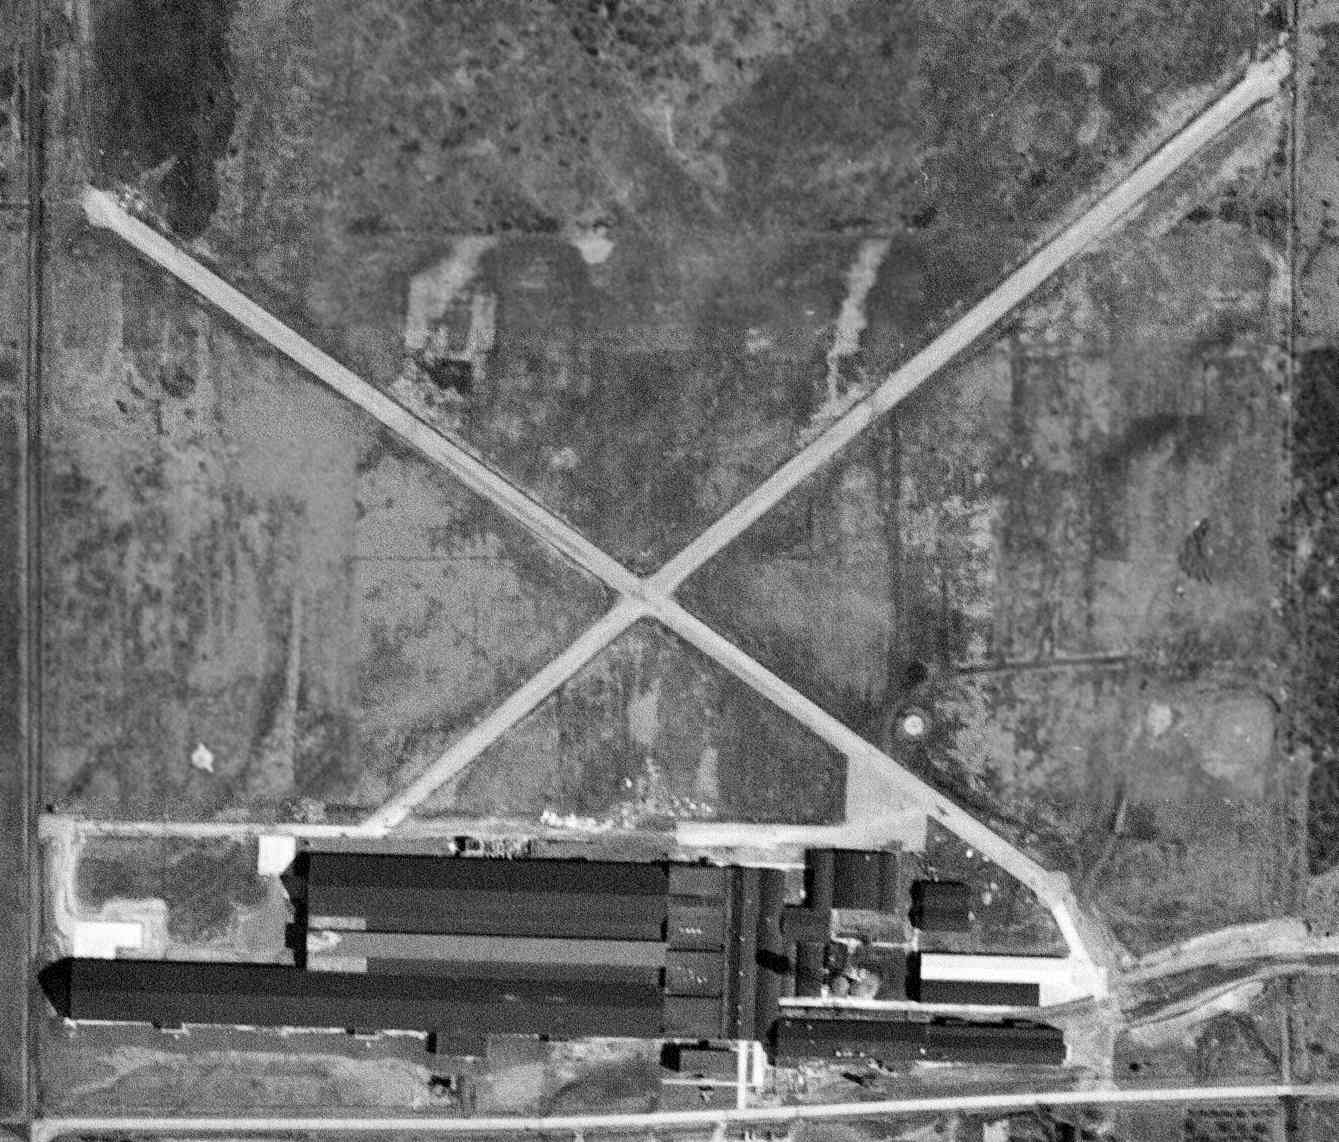 Abandoned Little Known Airfields Ohio Akron Area Exampletaylorcraftwiringdiagram A 4 16 50 Usgs Aerial Photo Depicted The Taylorcraft Factory Airfield As Having 2 Paved Runways